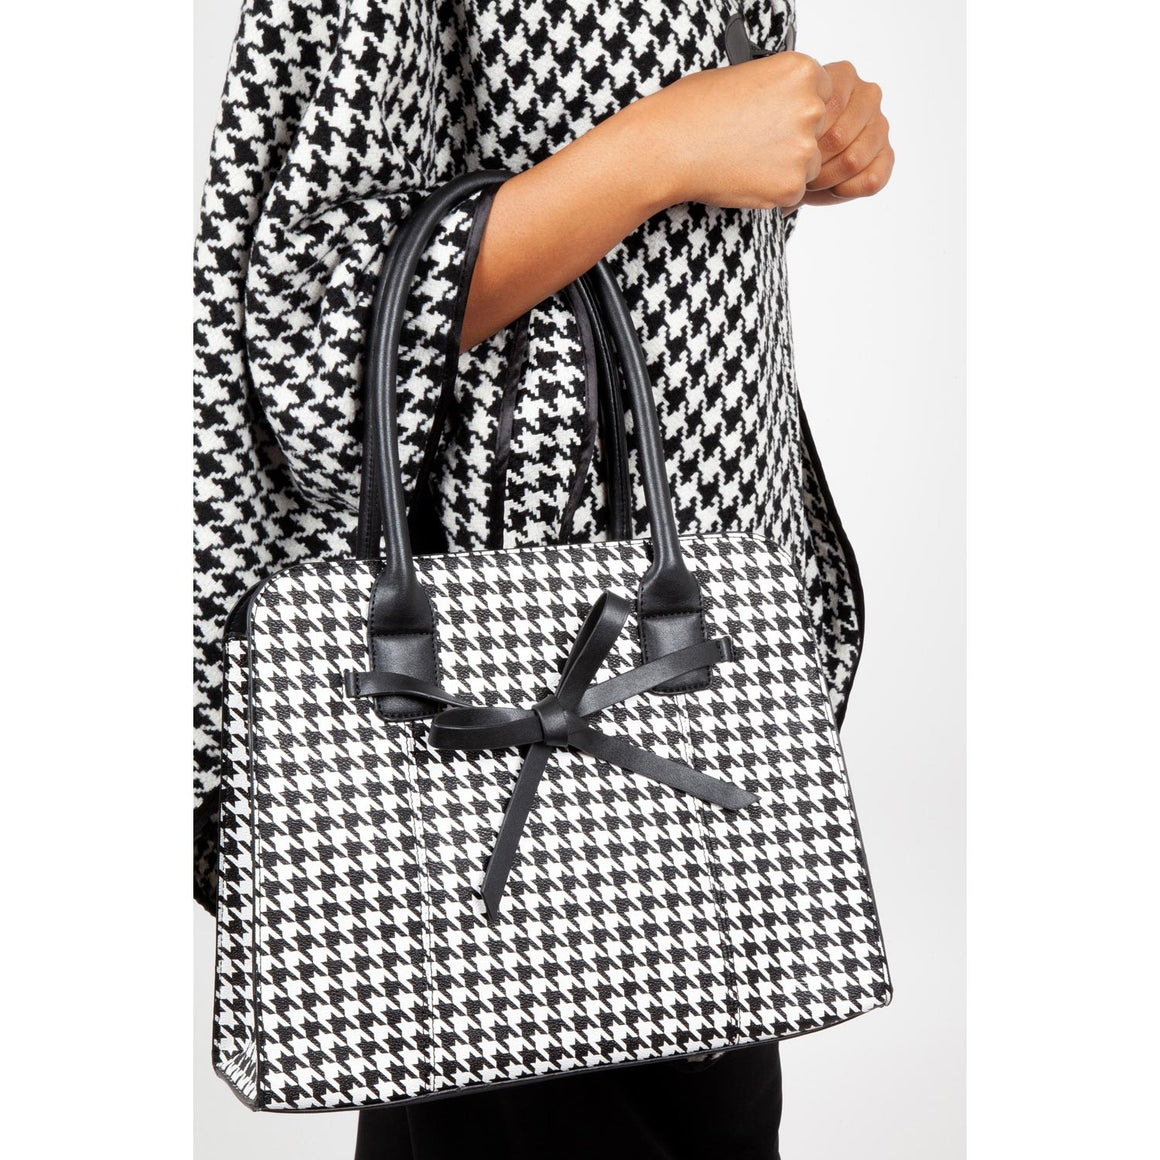 Black And White Houndstooth Handbag - Pretty Kitty Fashion